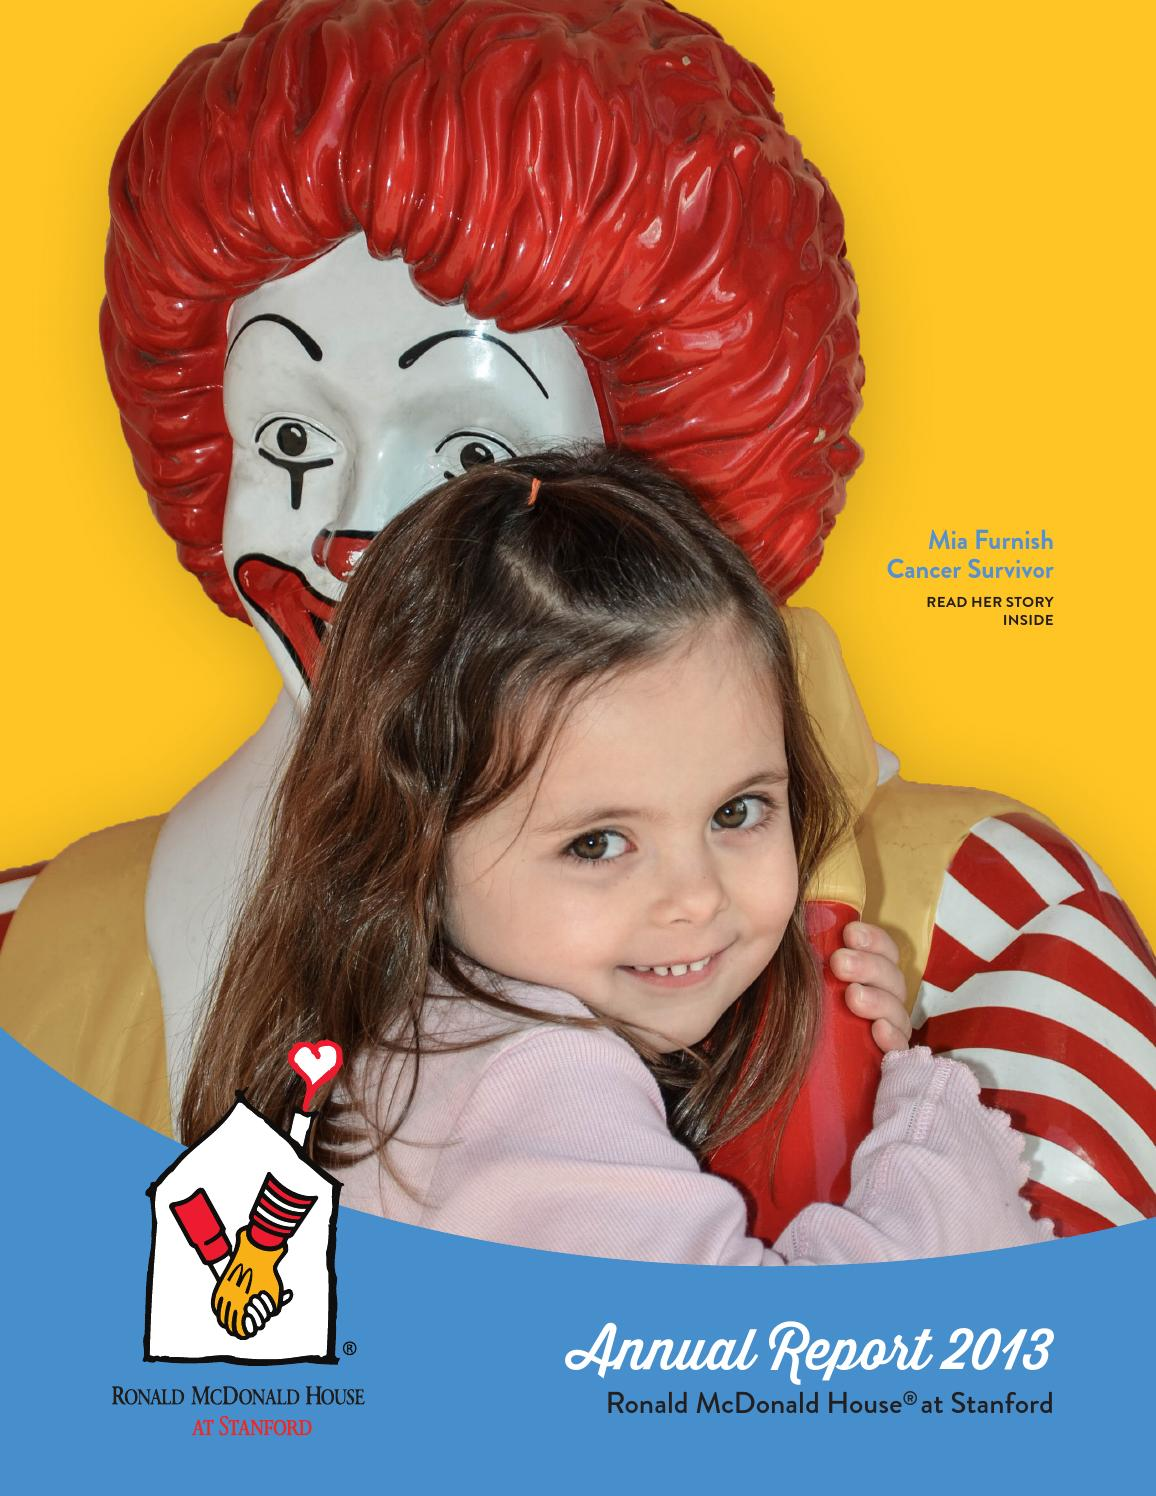 rmhs annual report 2013 by ronald mcdonald house at stanford issuu